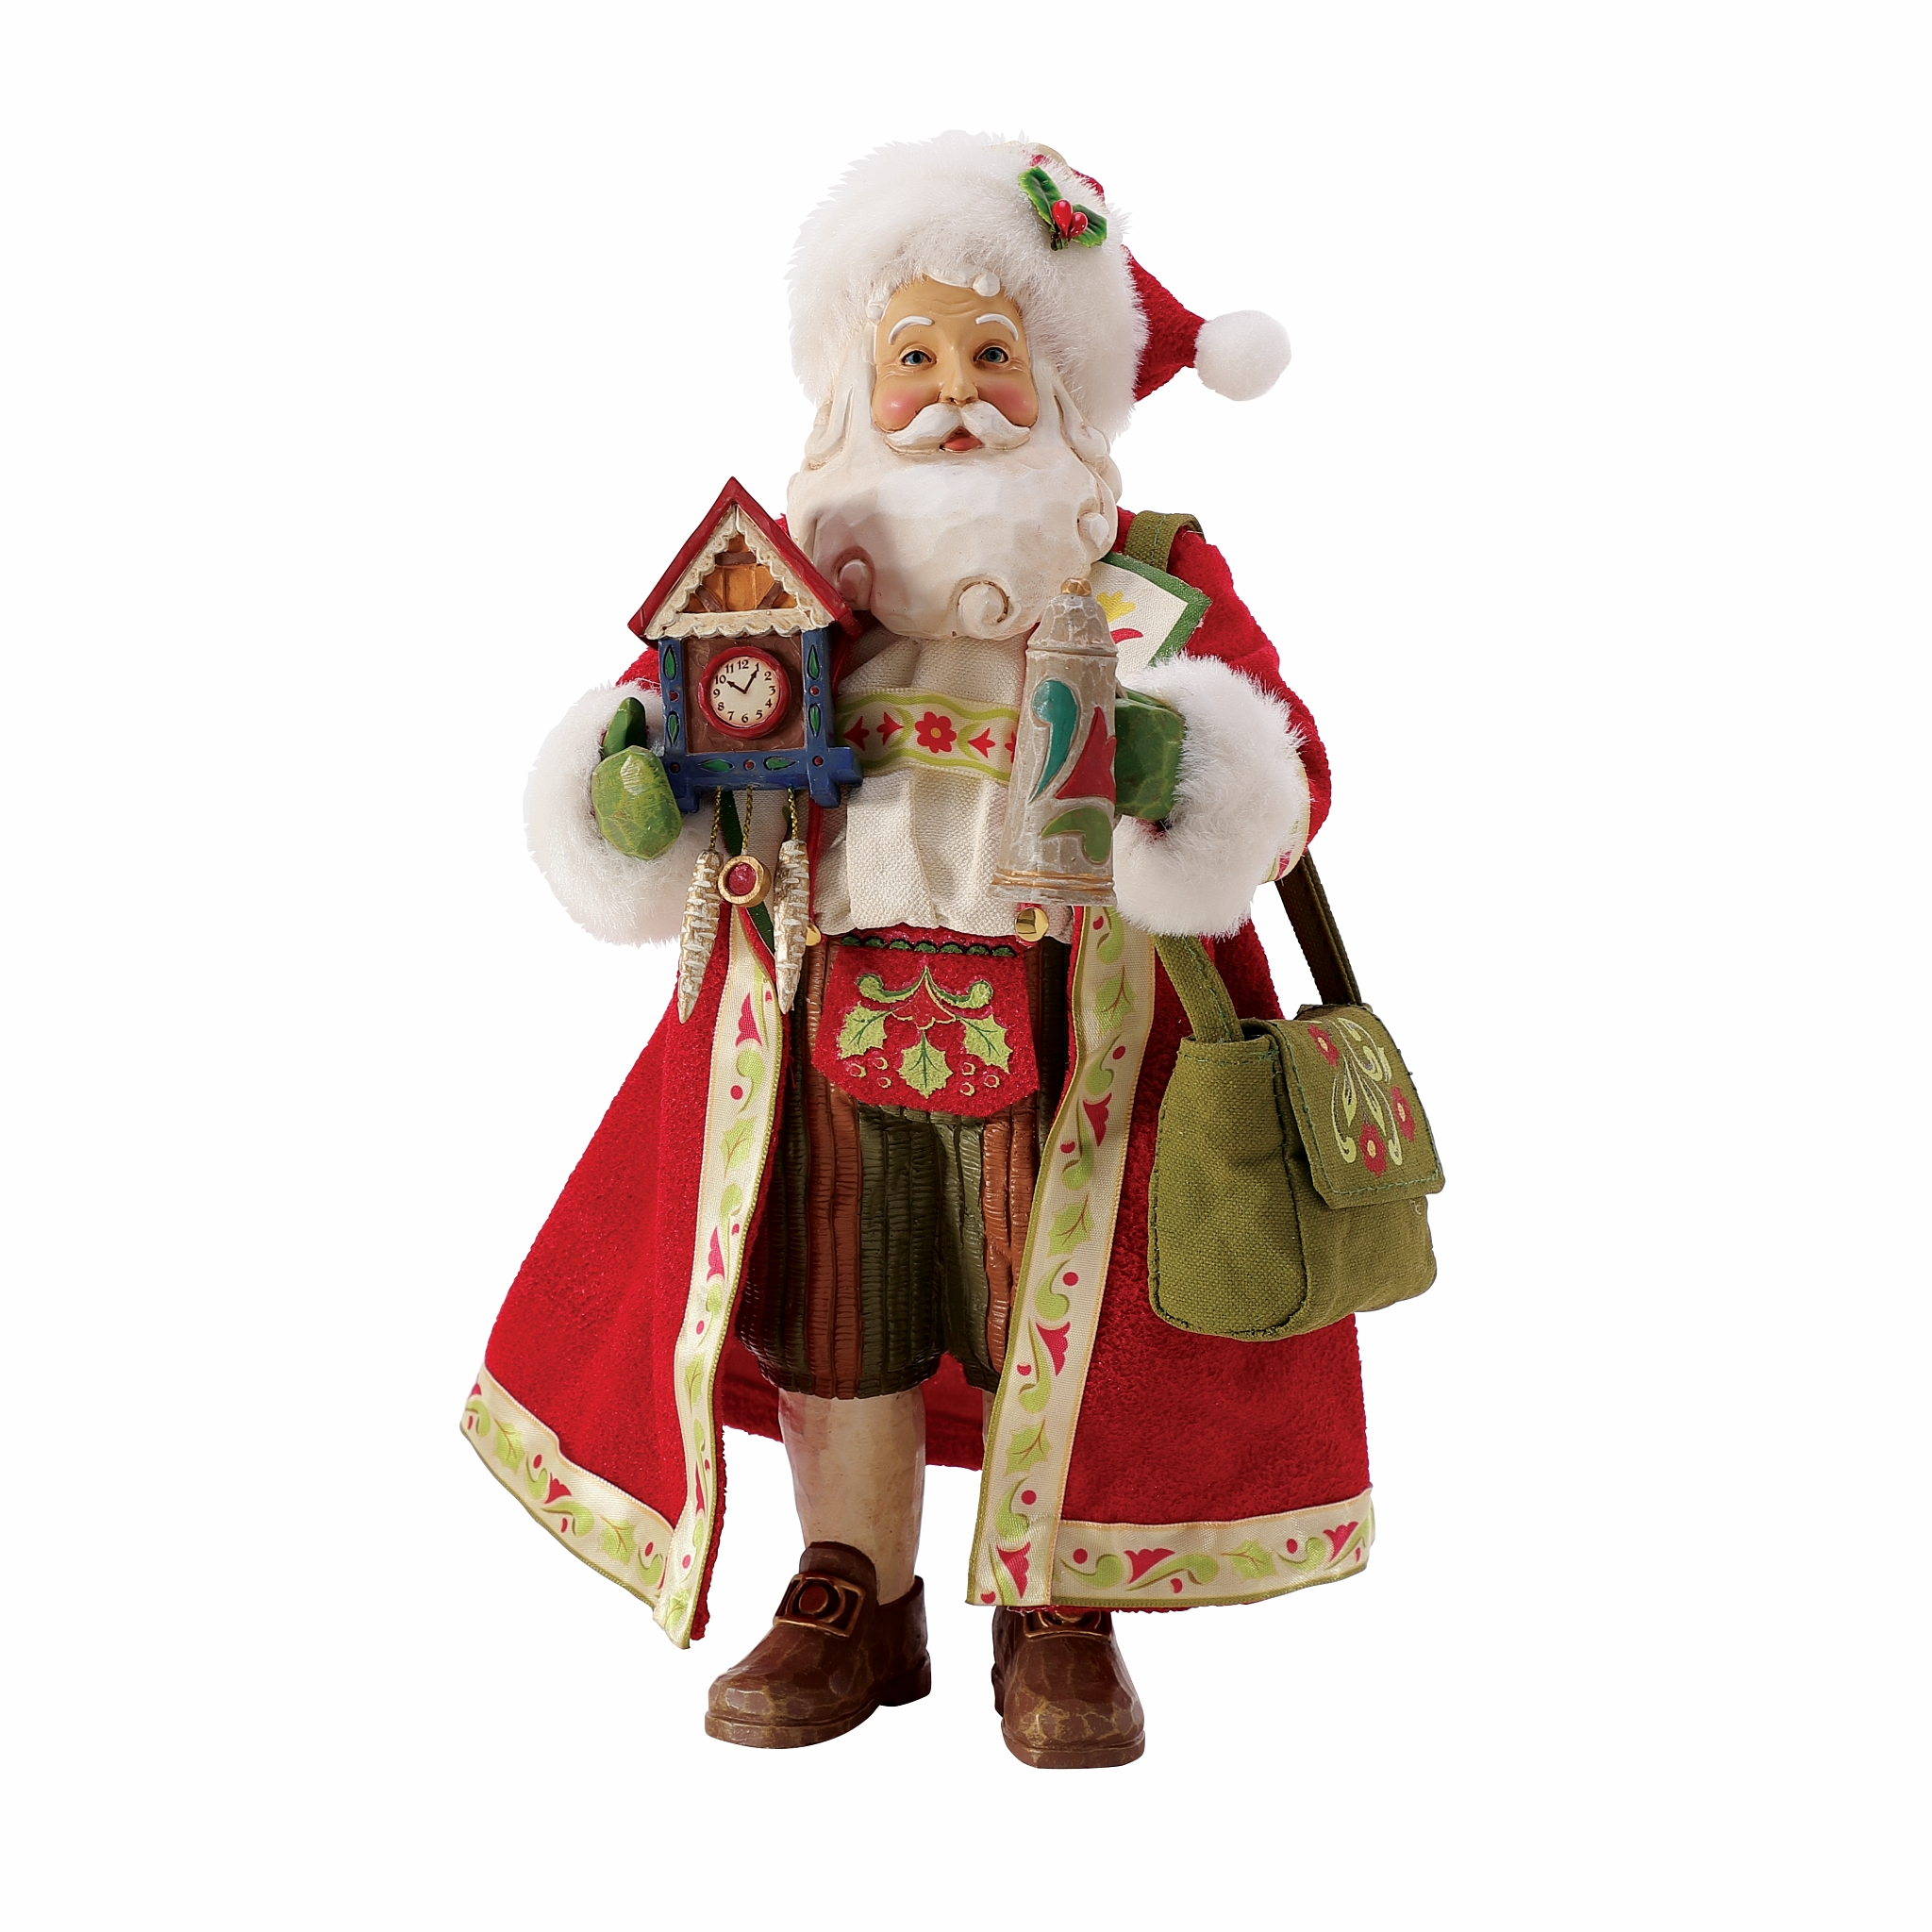 Department 56 ® - Others 'Der Weihnachtsmann (German Santa) N' 2021